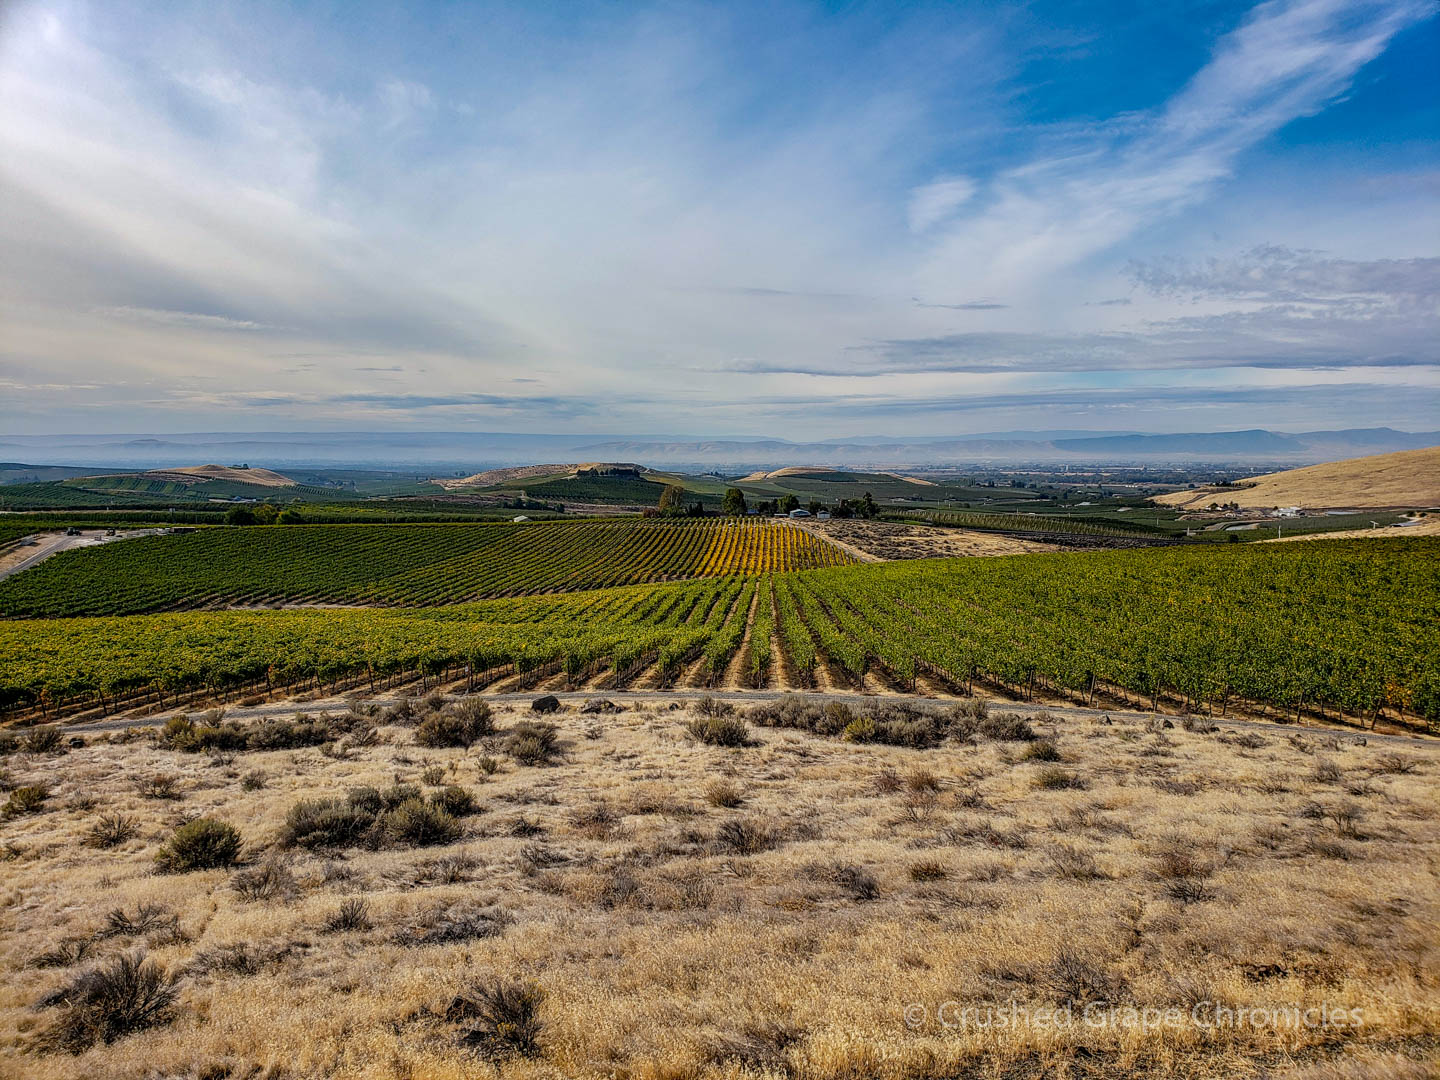 Looking South from Elephant Mountain Vineyard across the Yakima Valley